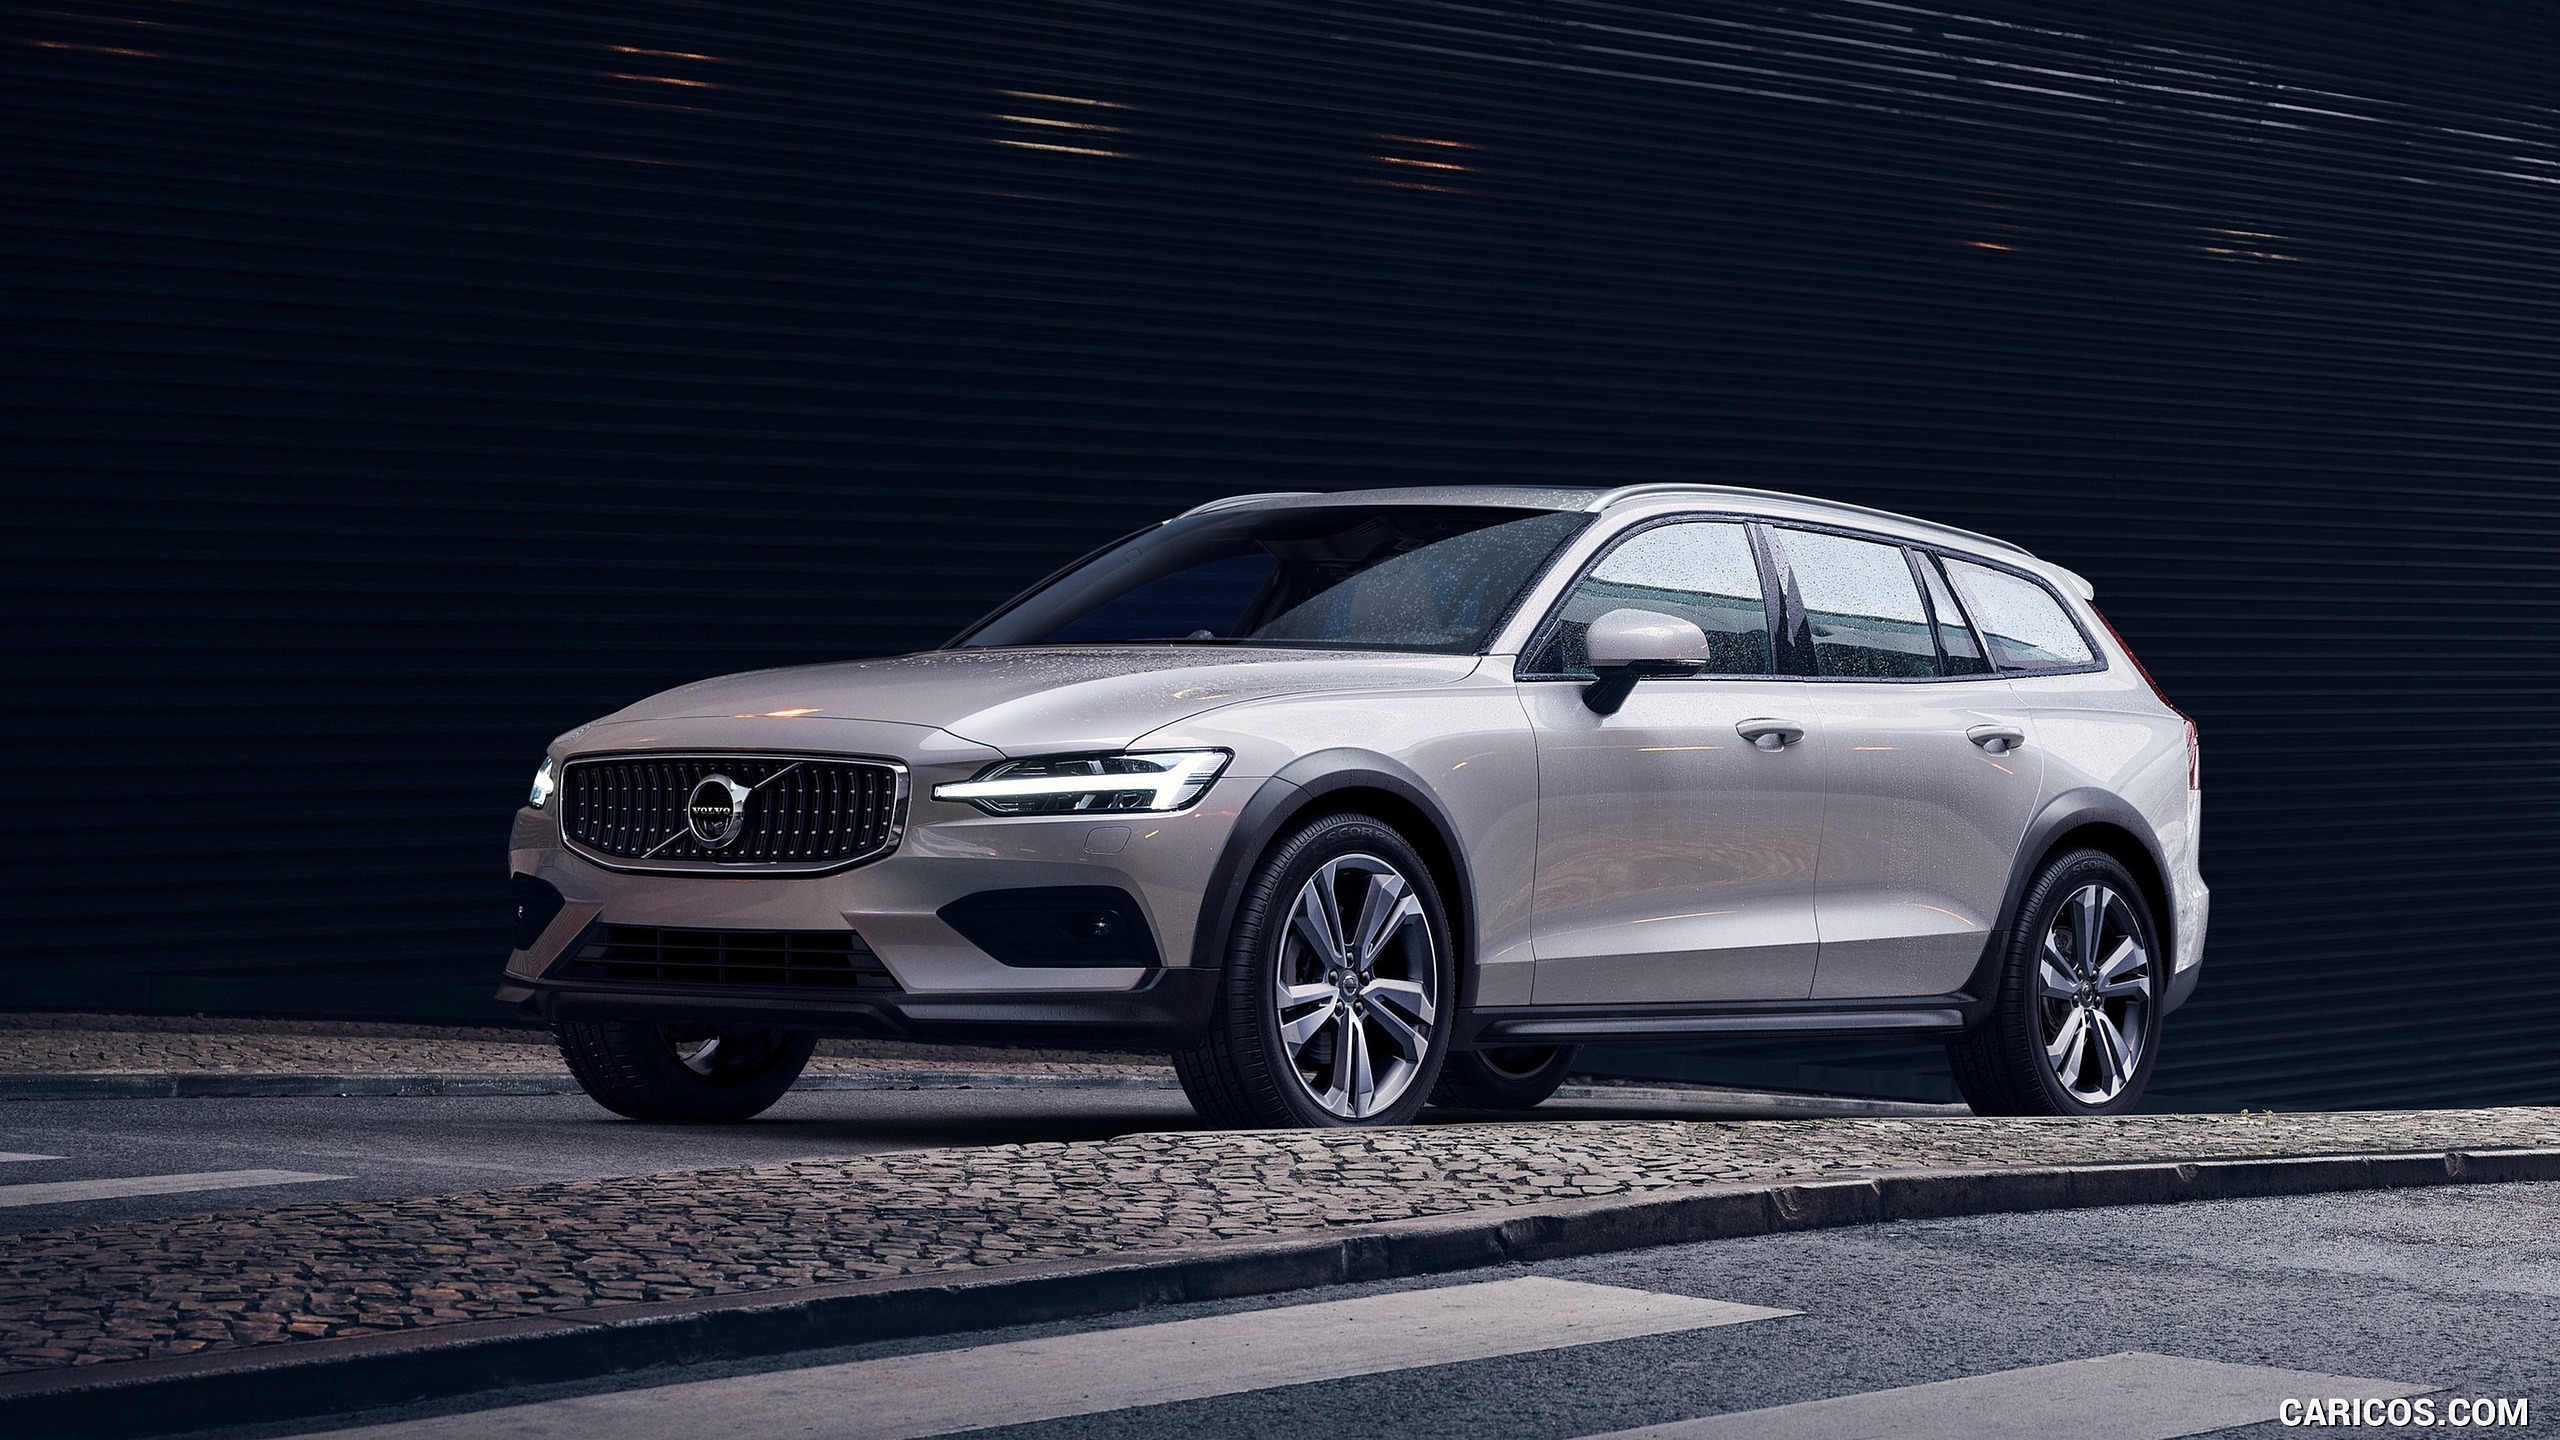 2019 Volvo V60 Cross Country   Front Three Quarter HD Wallpaper 1 2560x1440